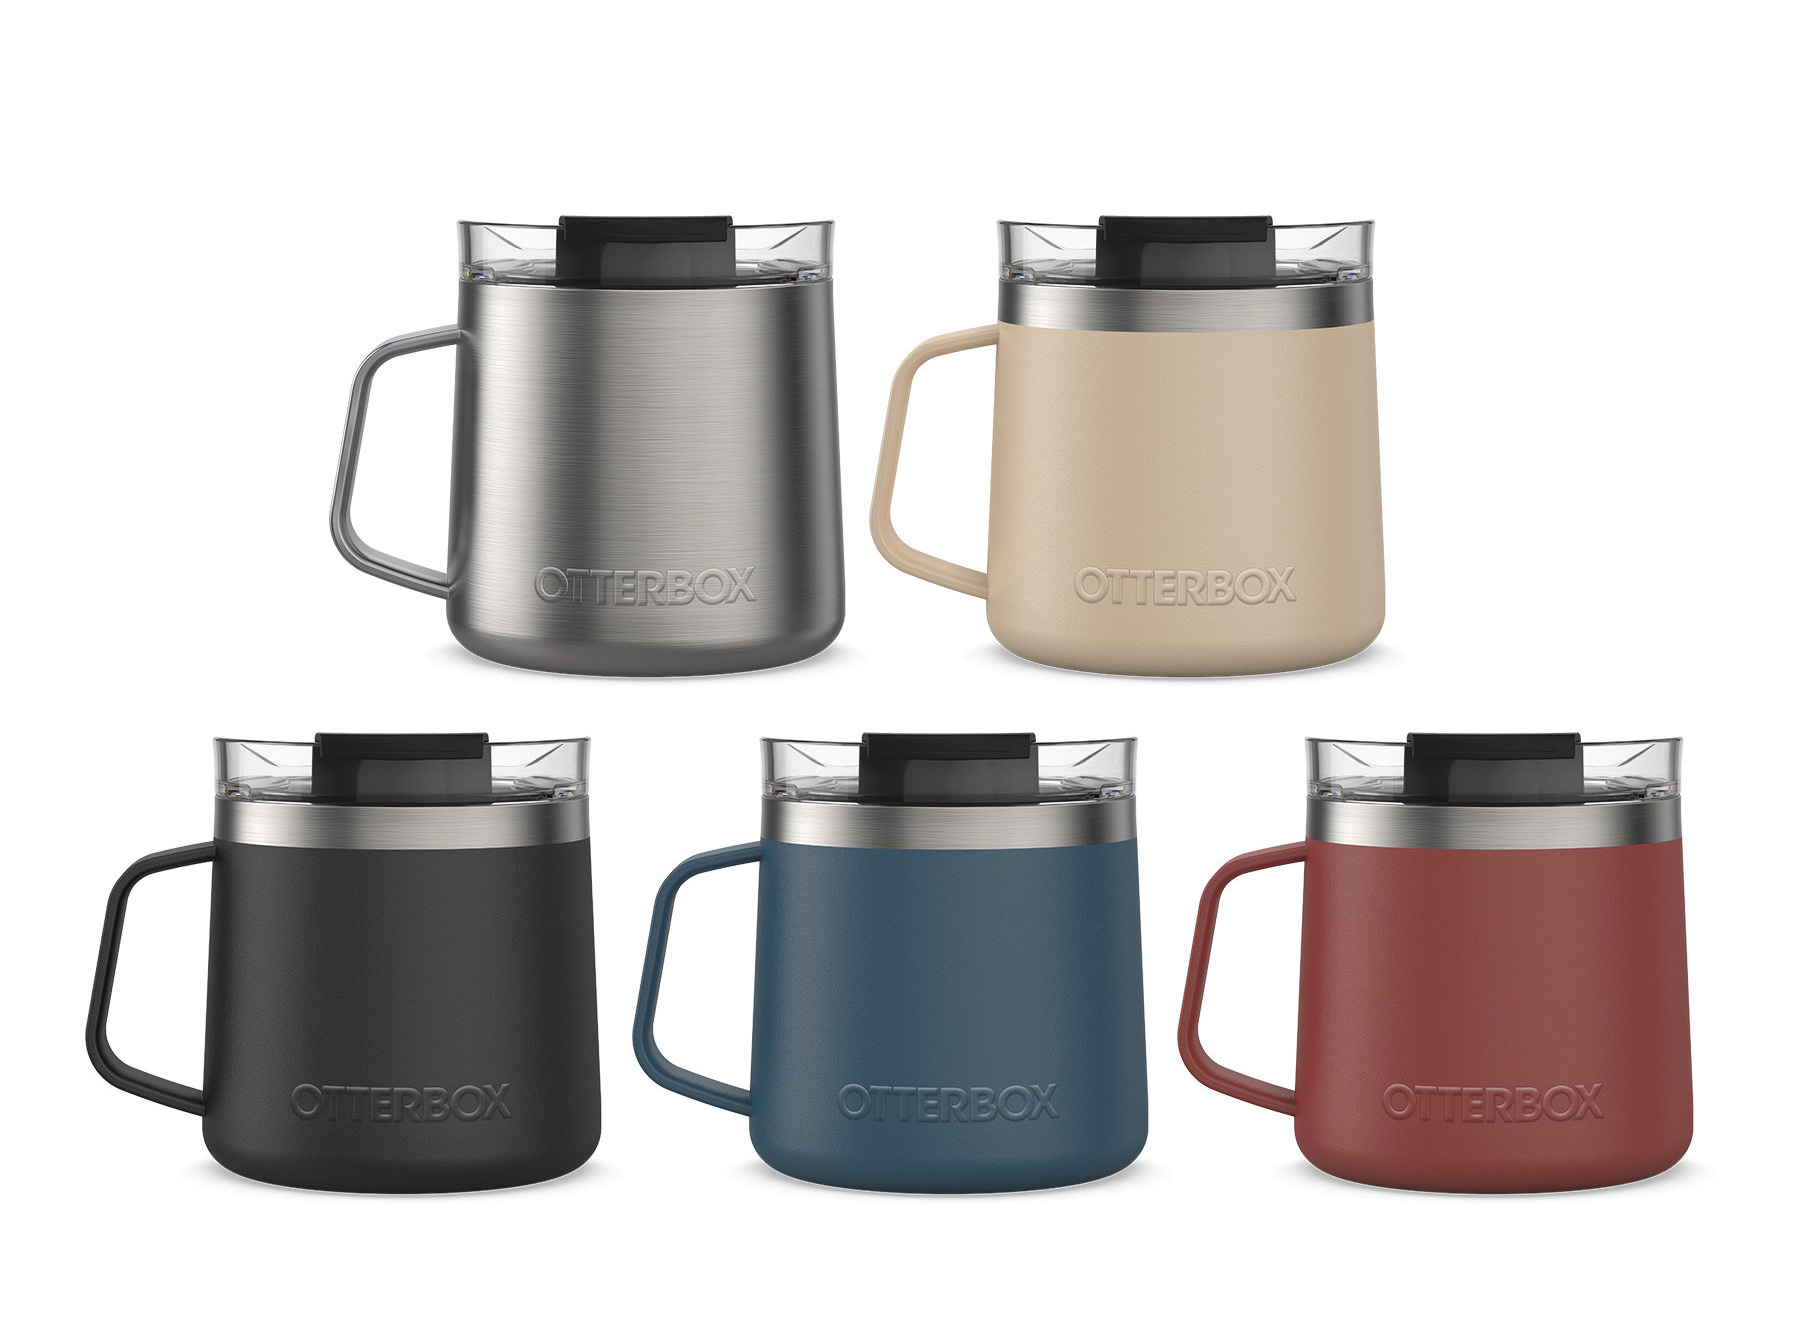 The Otterbox Elevation 14 Mug is a Durable Daily Drinker at werd.com